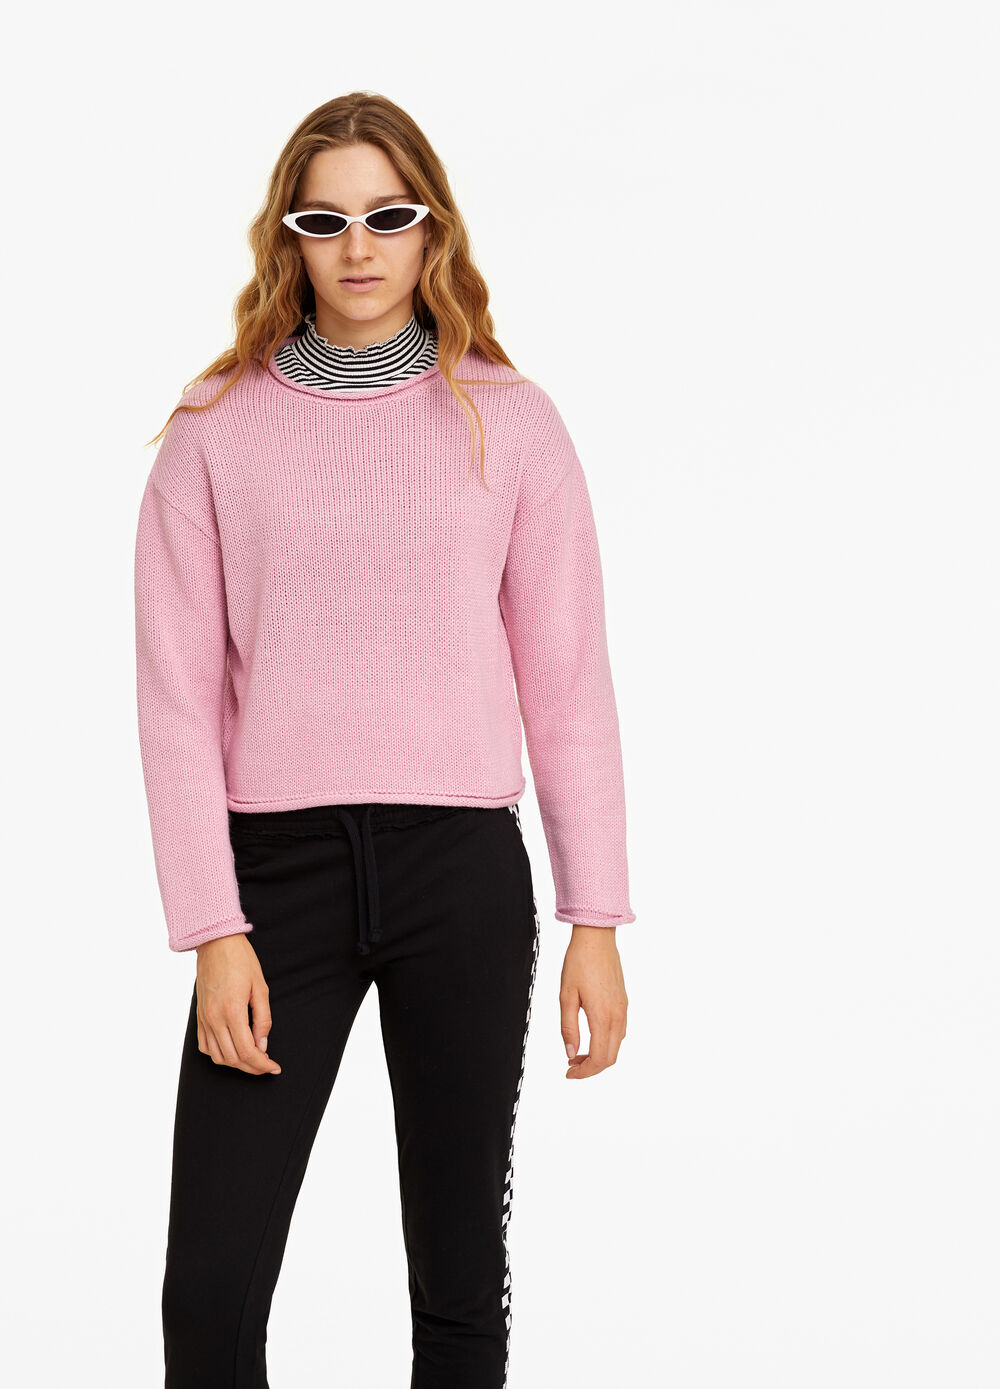 Knitted crop pullover with roll-up edges